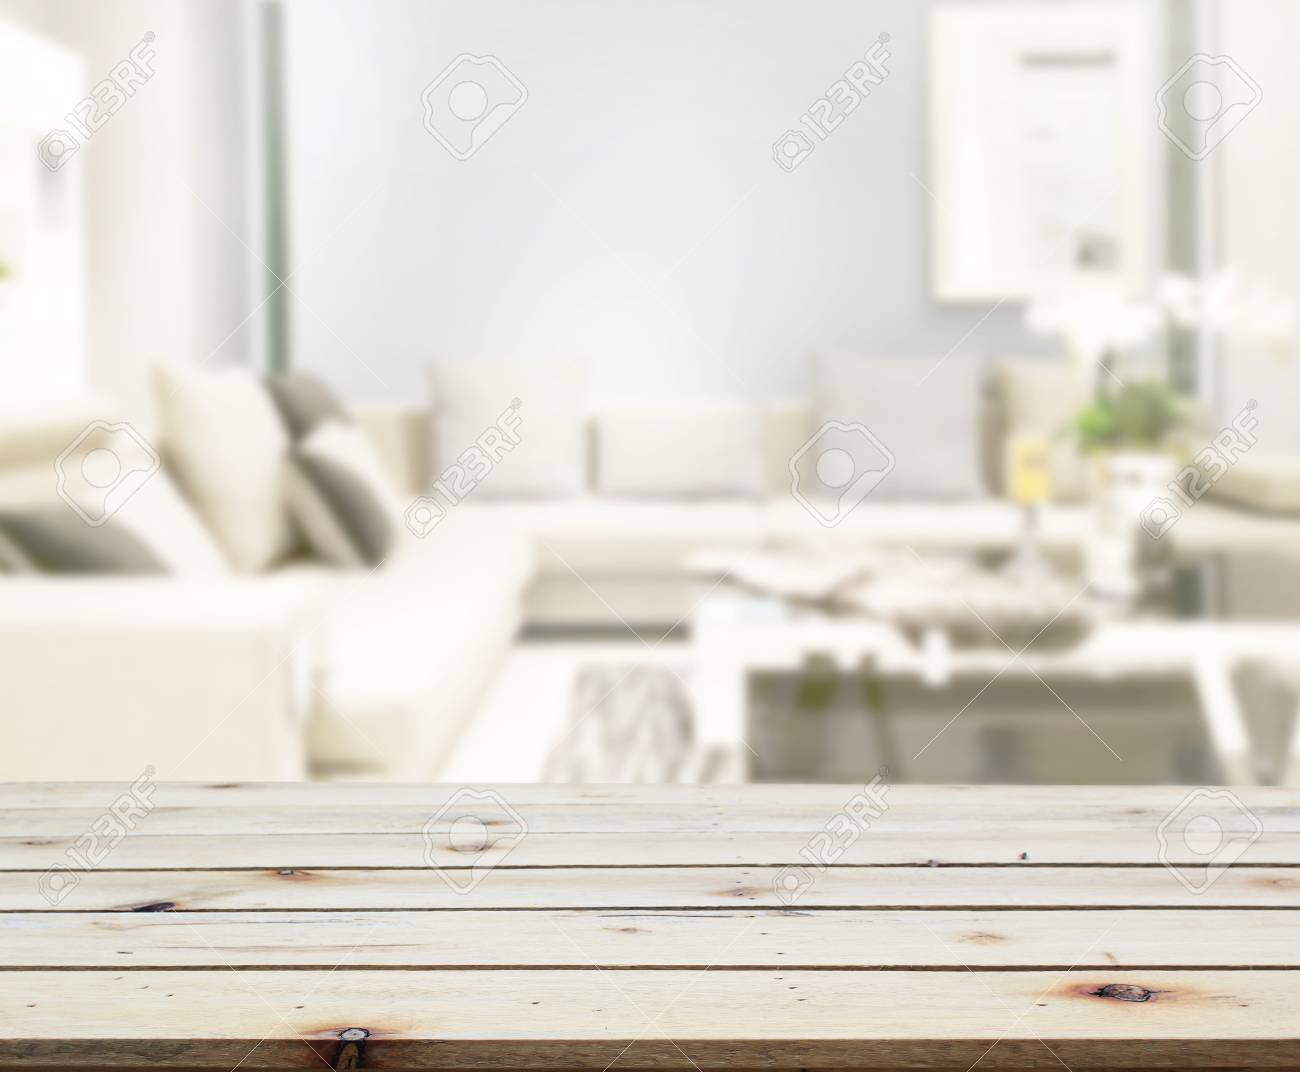 Table Top And Blur Living Room Of The Background Stock Photo Picture And Royalty Free Image Image 108938747